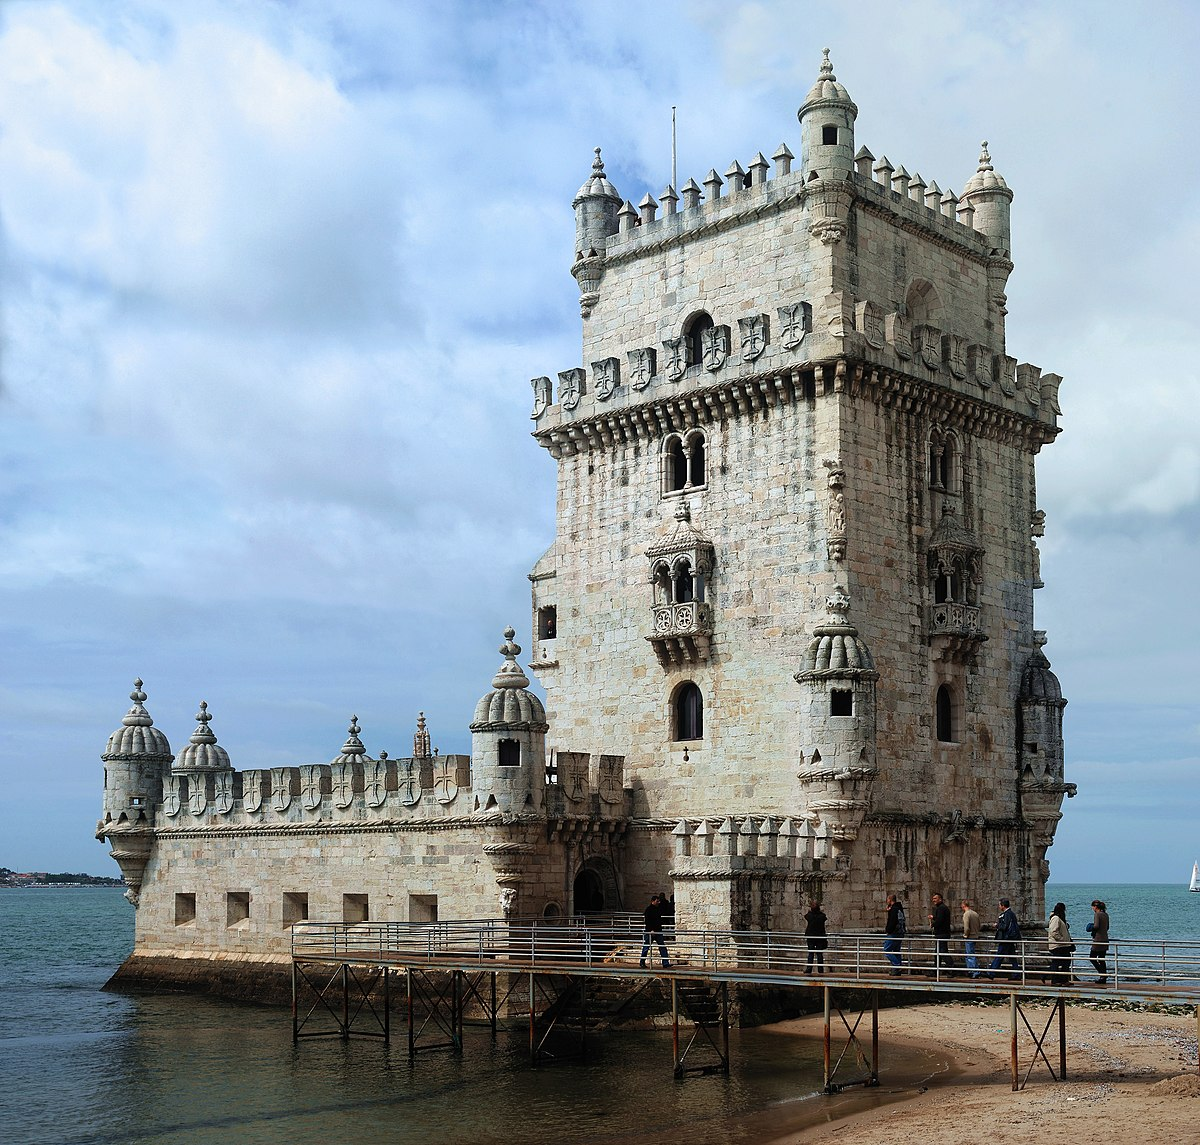 Belém Tower - Wik...